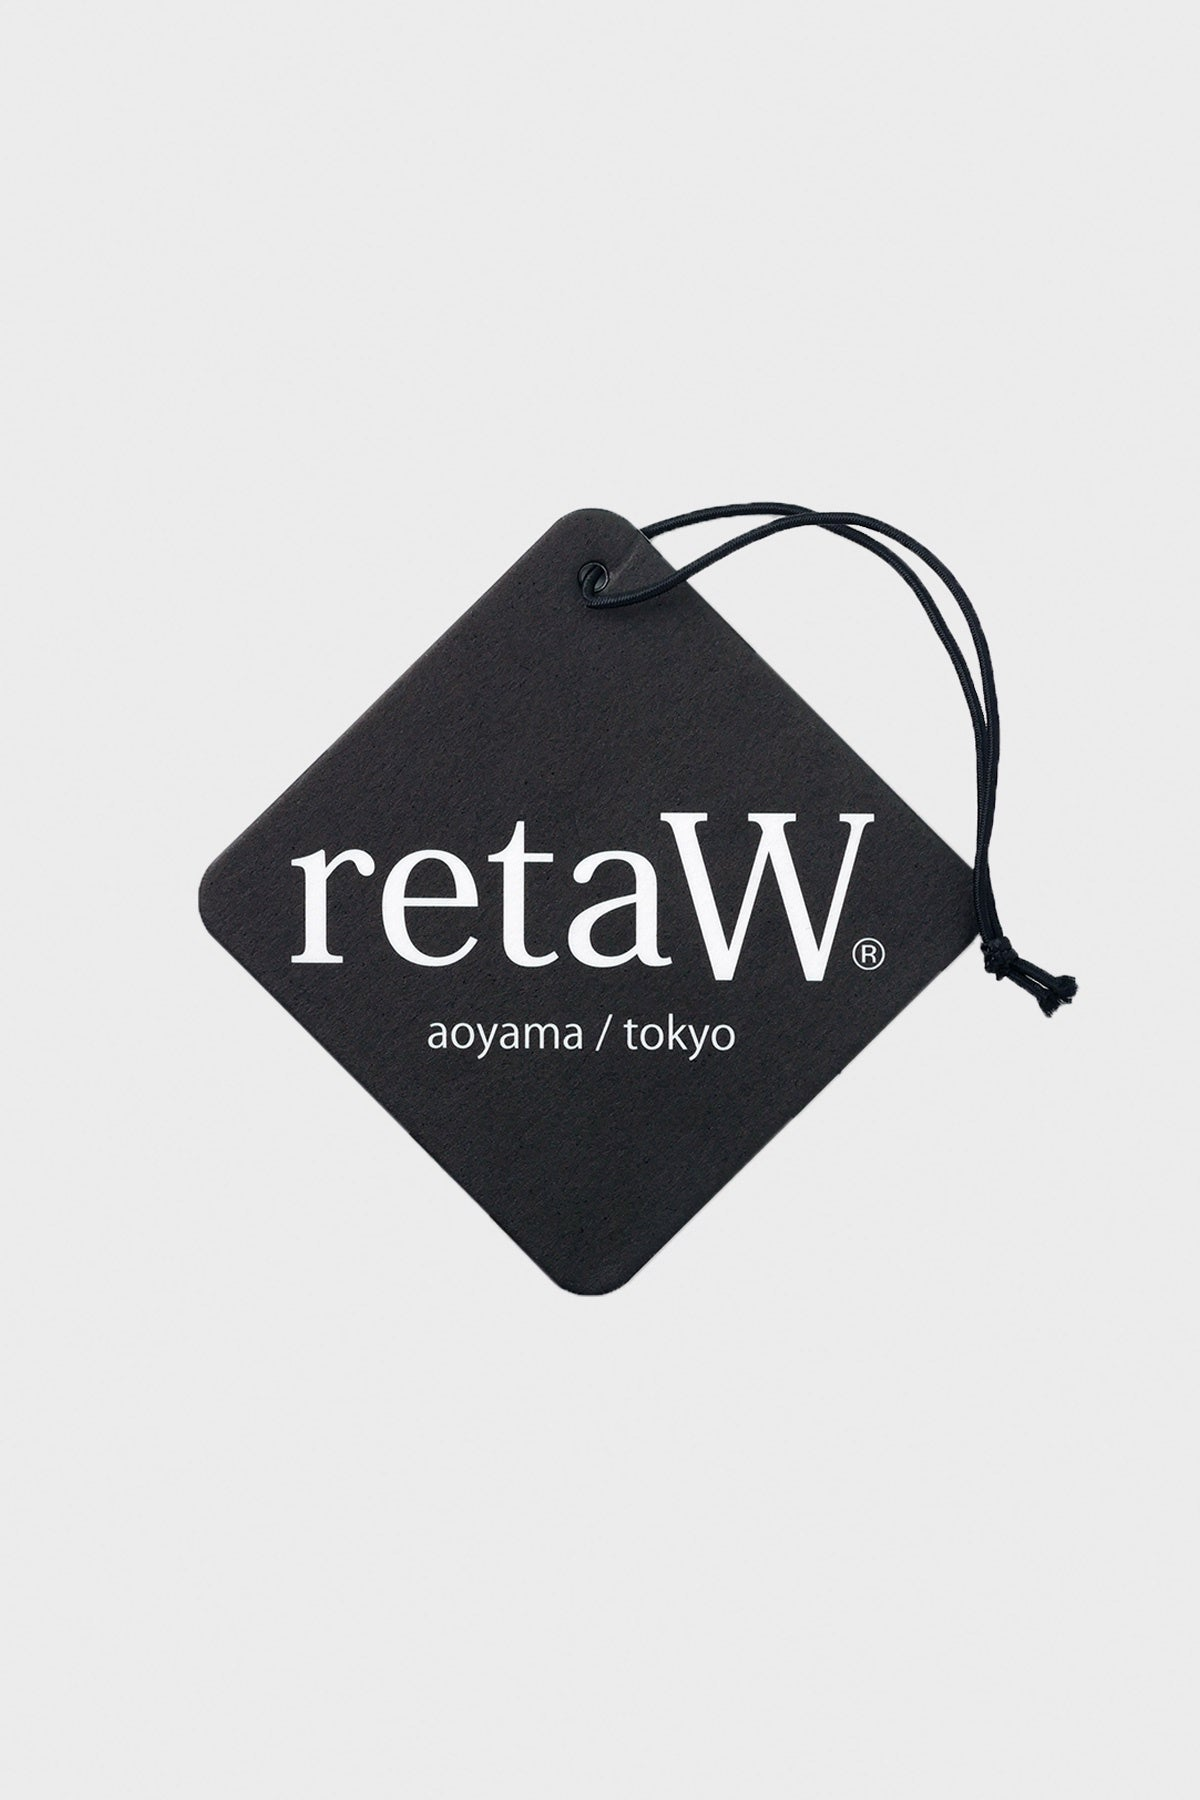 retaW - Fragrance Car Tag - Allen - Canoe Club